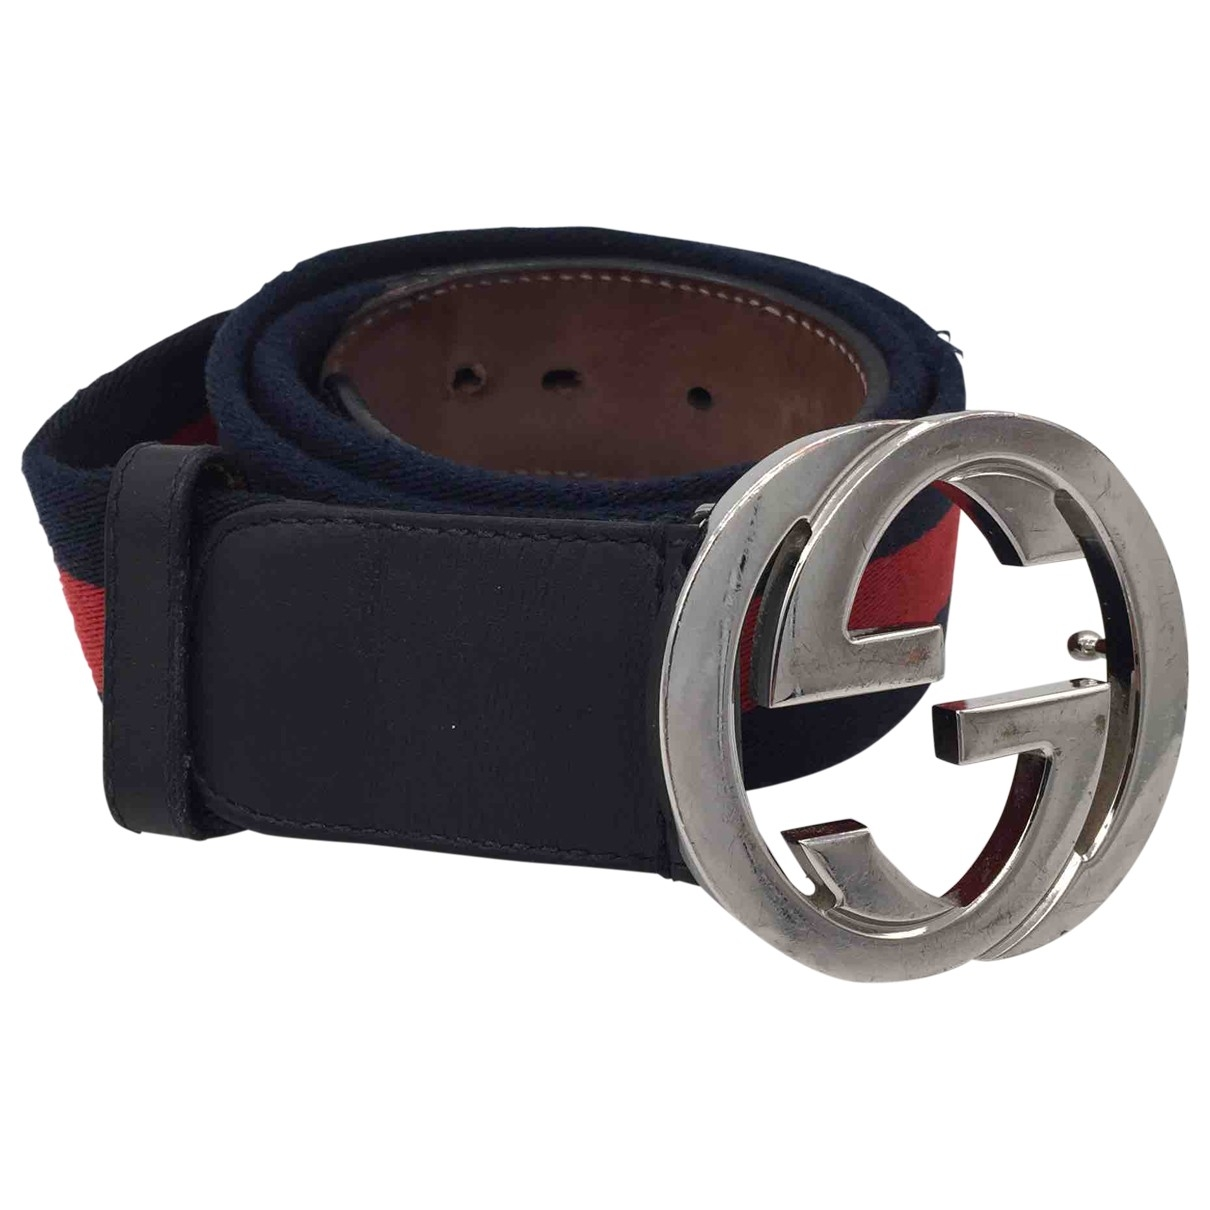 Gucci Interlocking Buckle Cloth belt for Men 85 cm